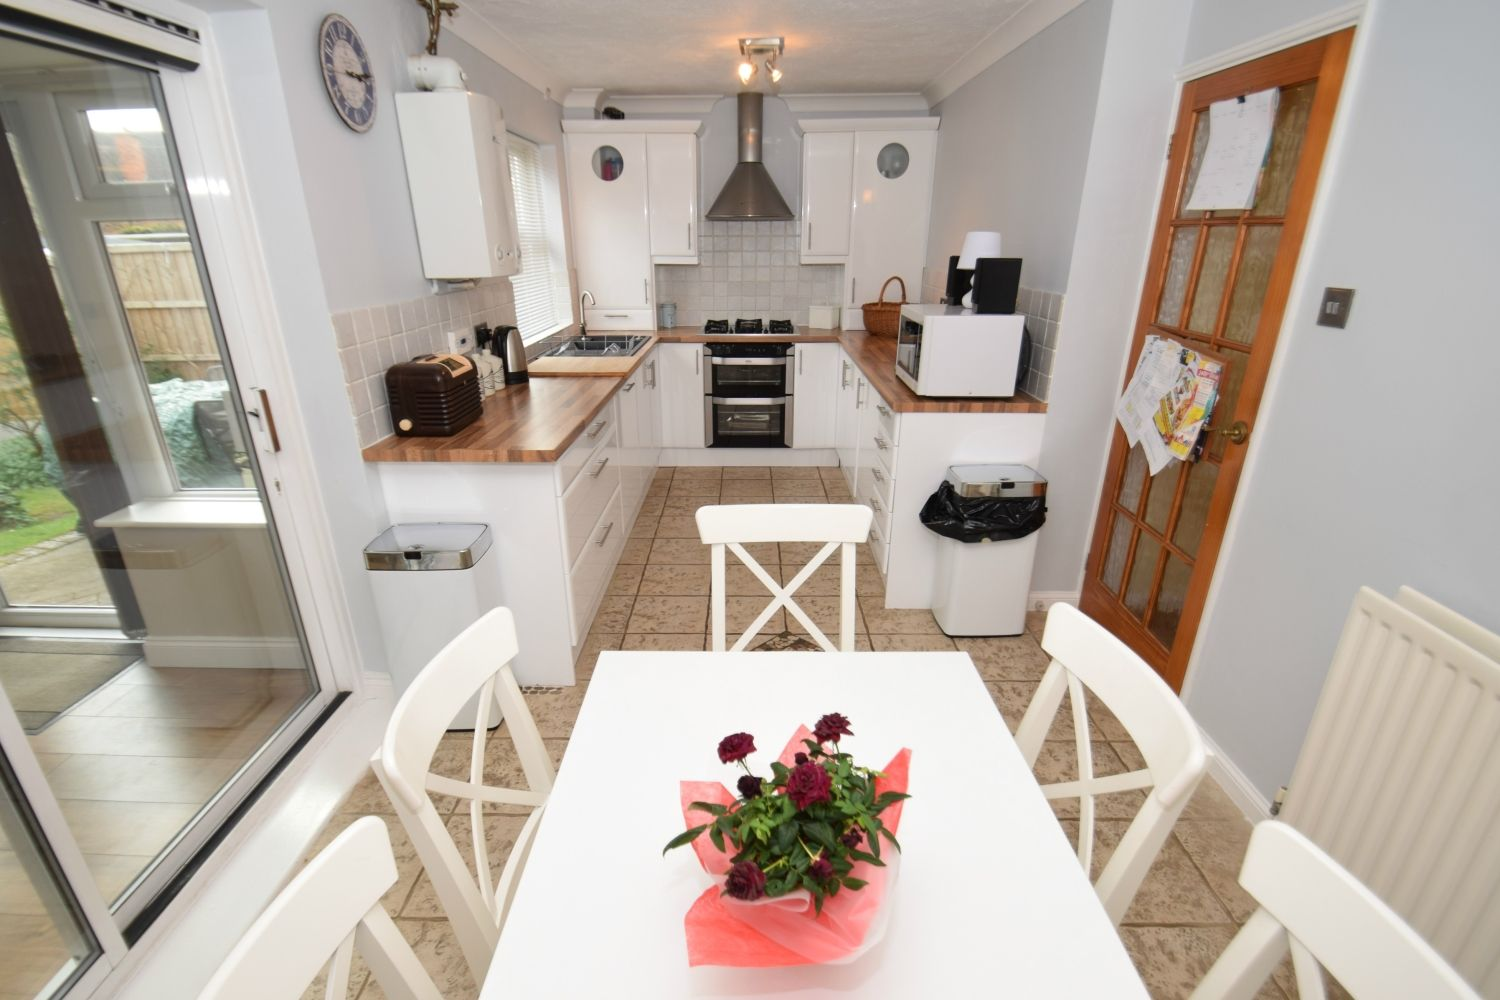 3 bed detached for sale in Foxes Close, Blackwell, B60  - Property Image 4